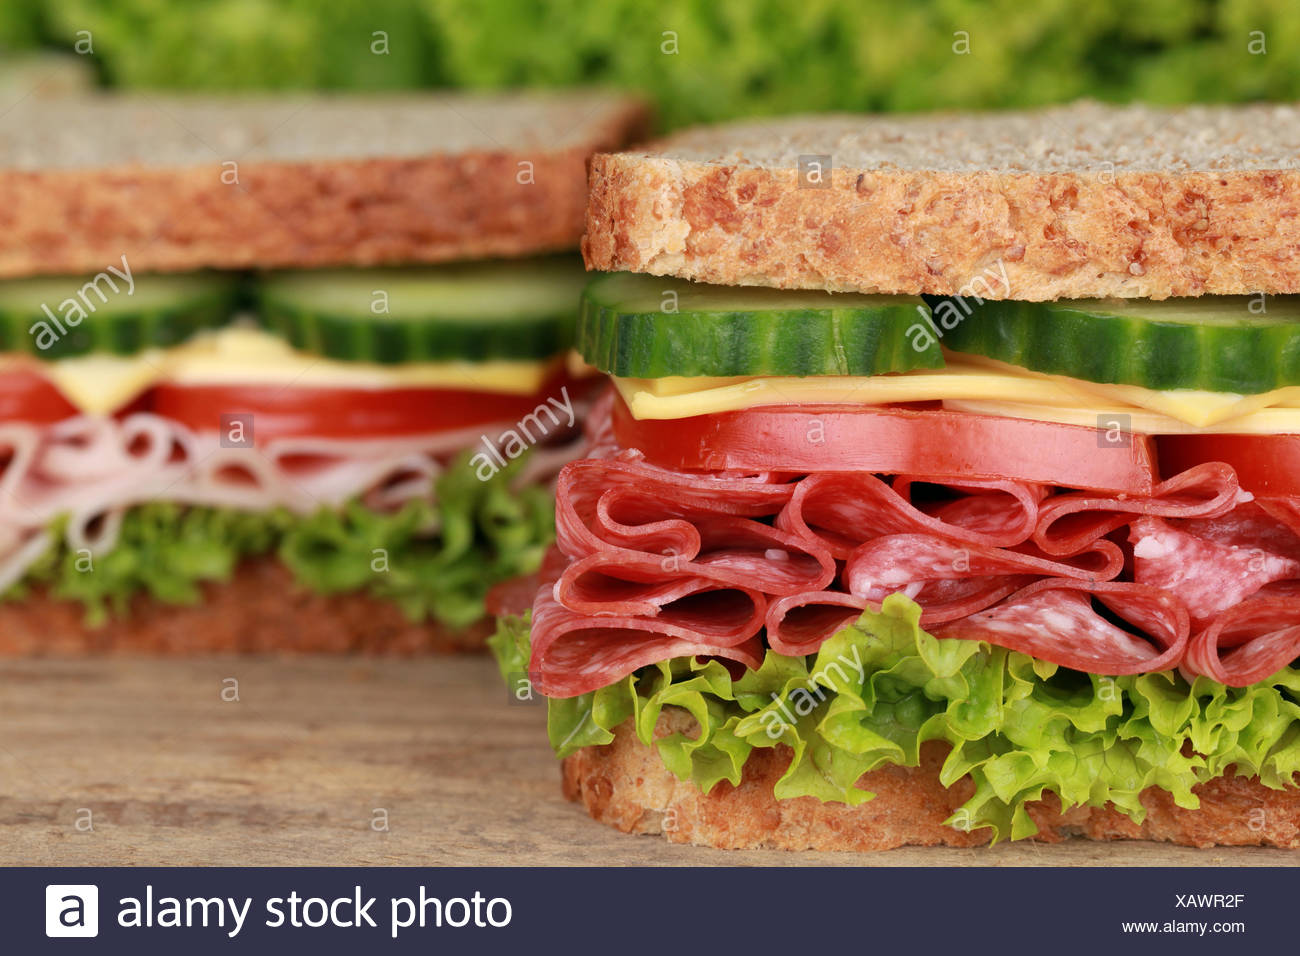 Sandwiches - Stock Image